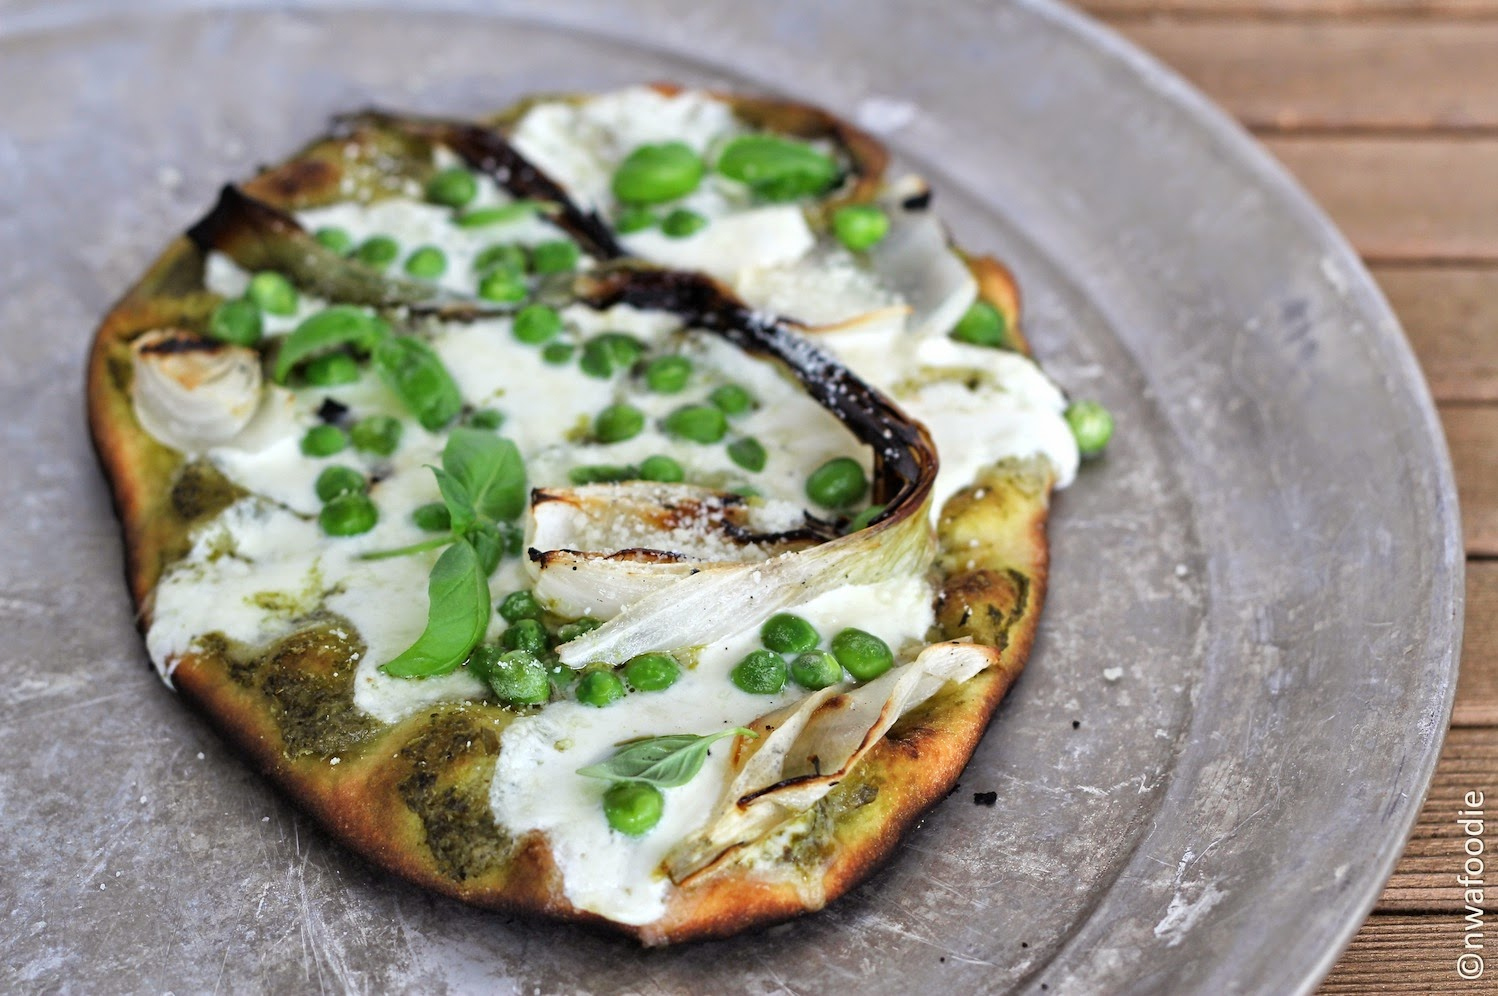 Grilled Spring pizza with spring onions, sweet peas and basic micro greens (c)nwafoodie